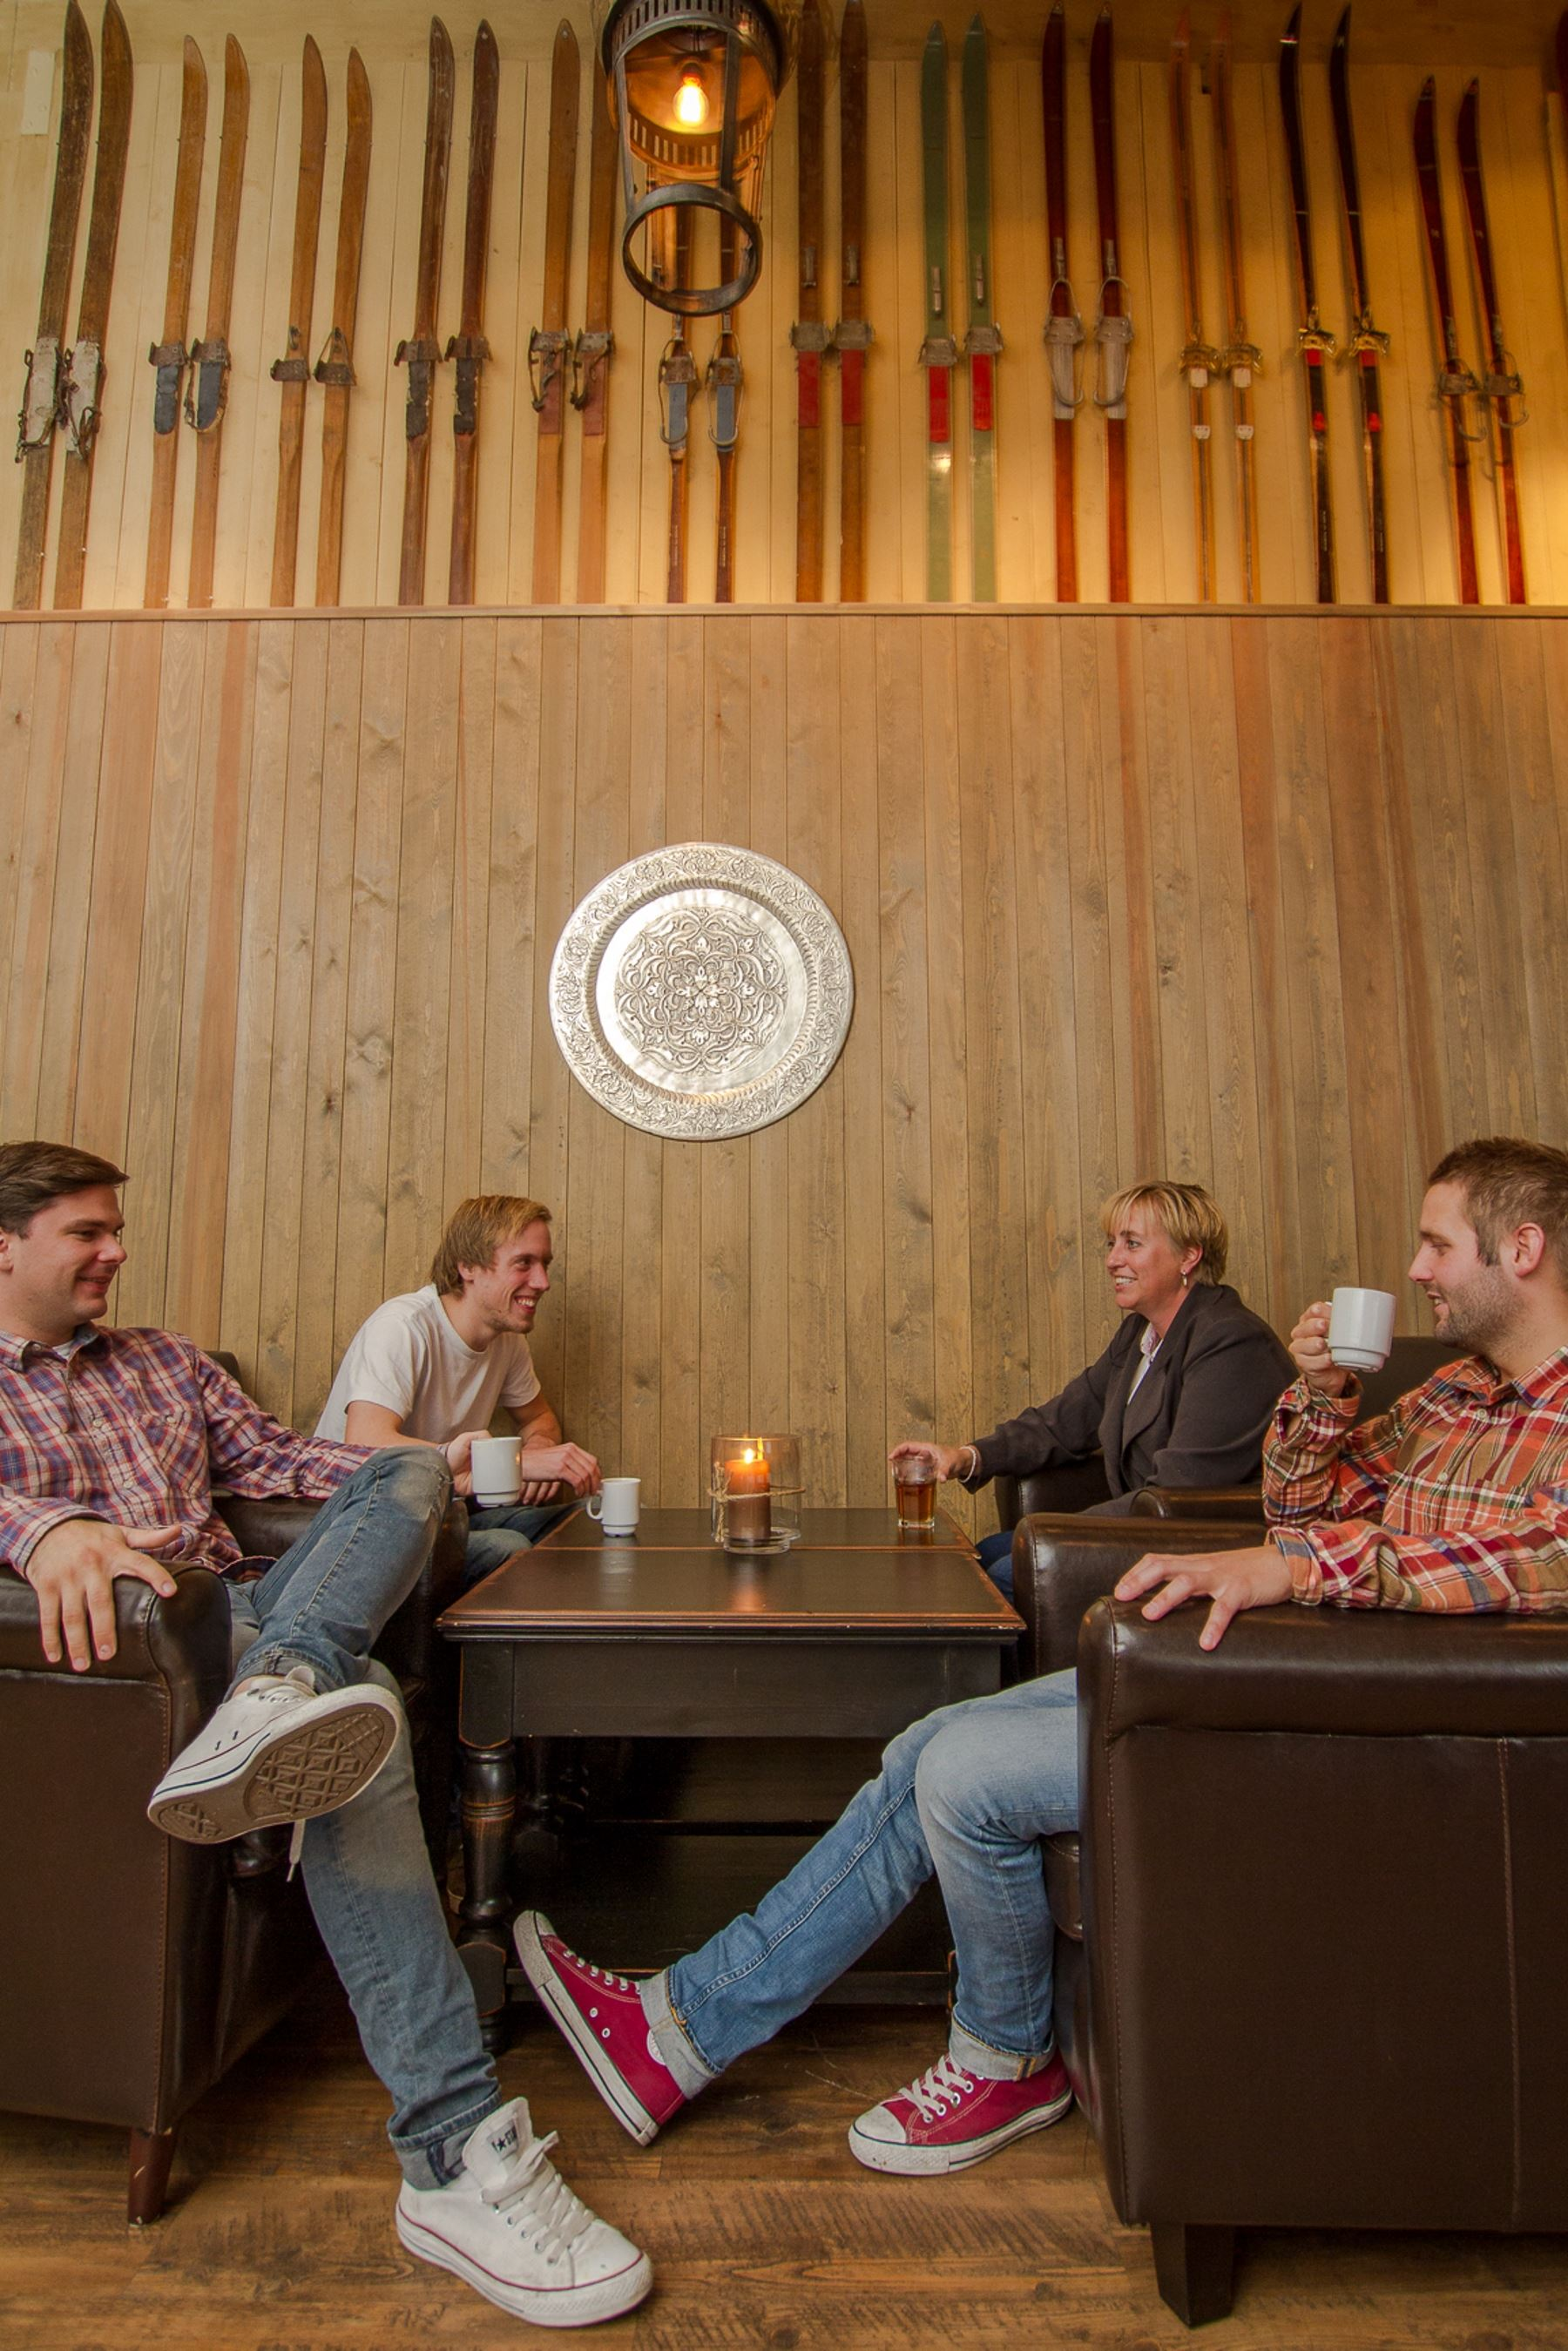 Fire place lounge at Hafjell Hotel